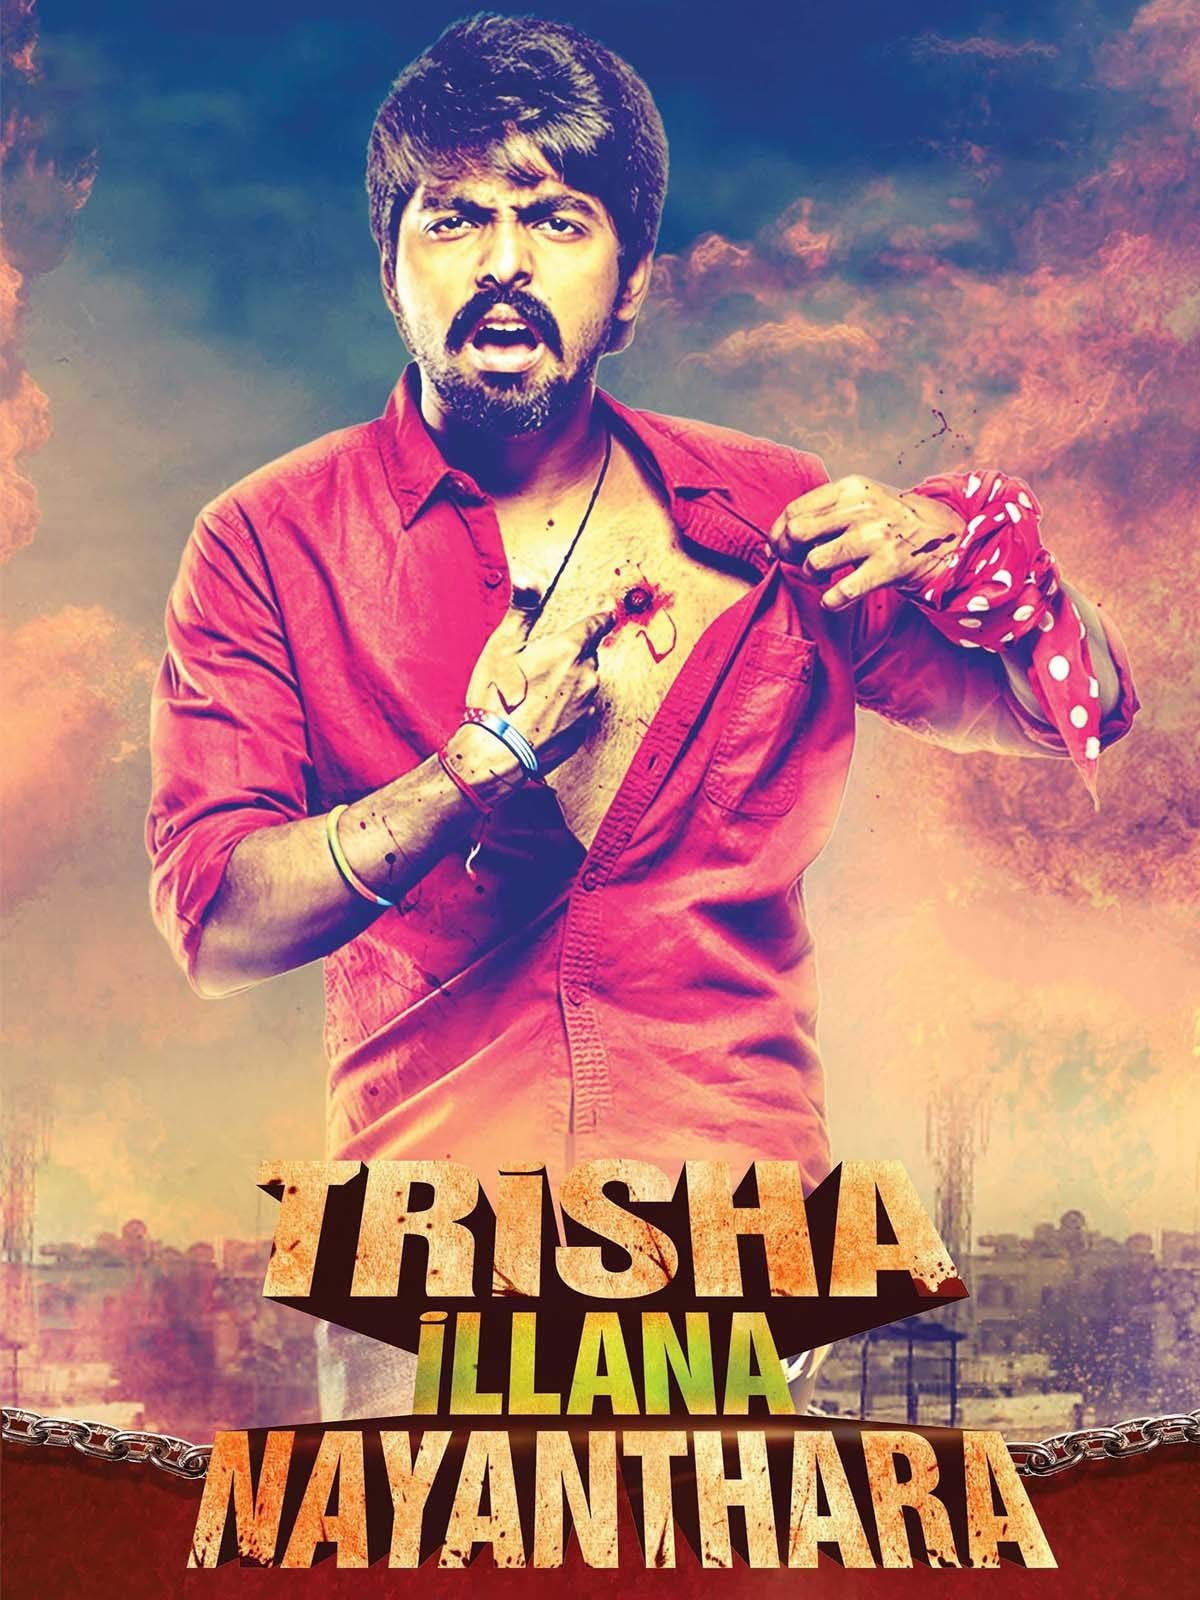 Trisha Illana Nayanthara Song Lyrics